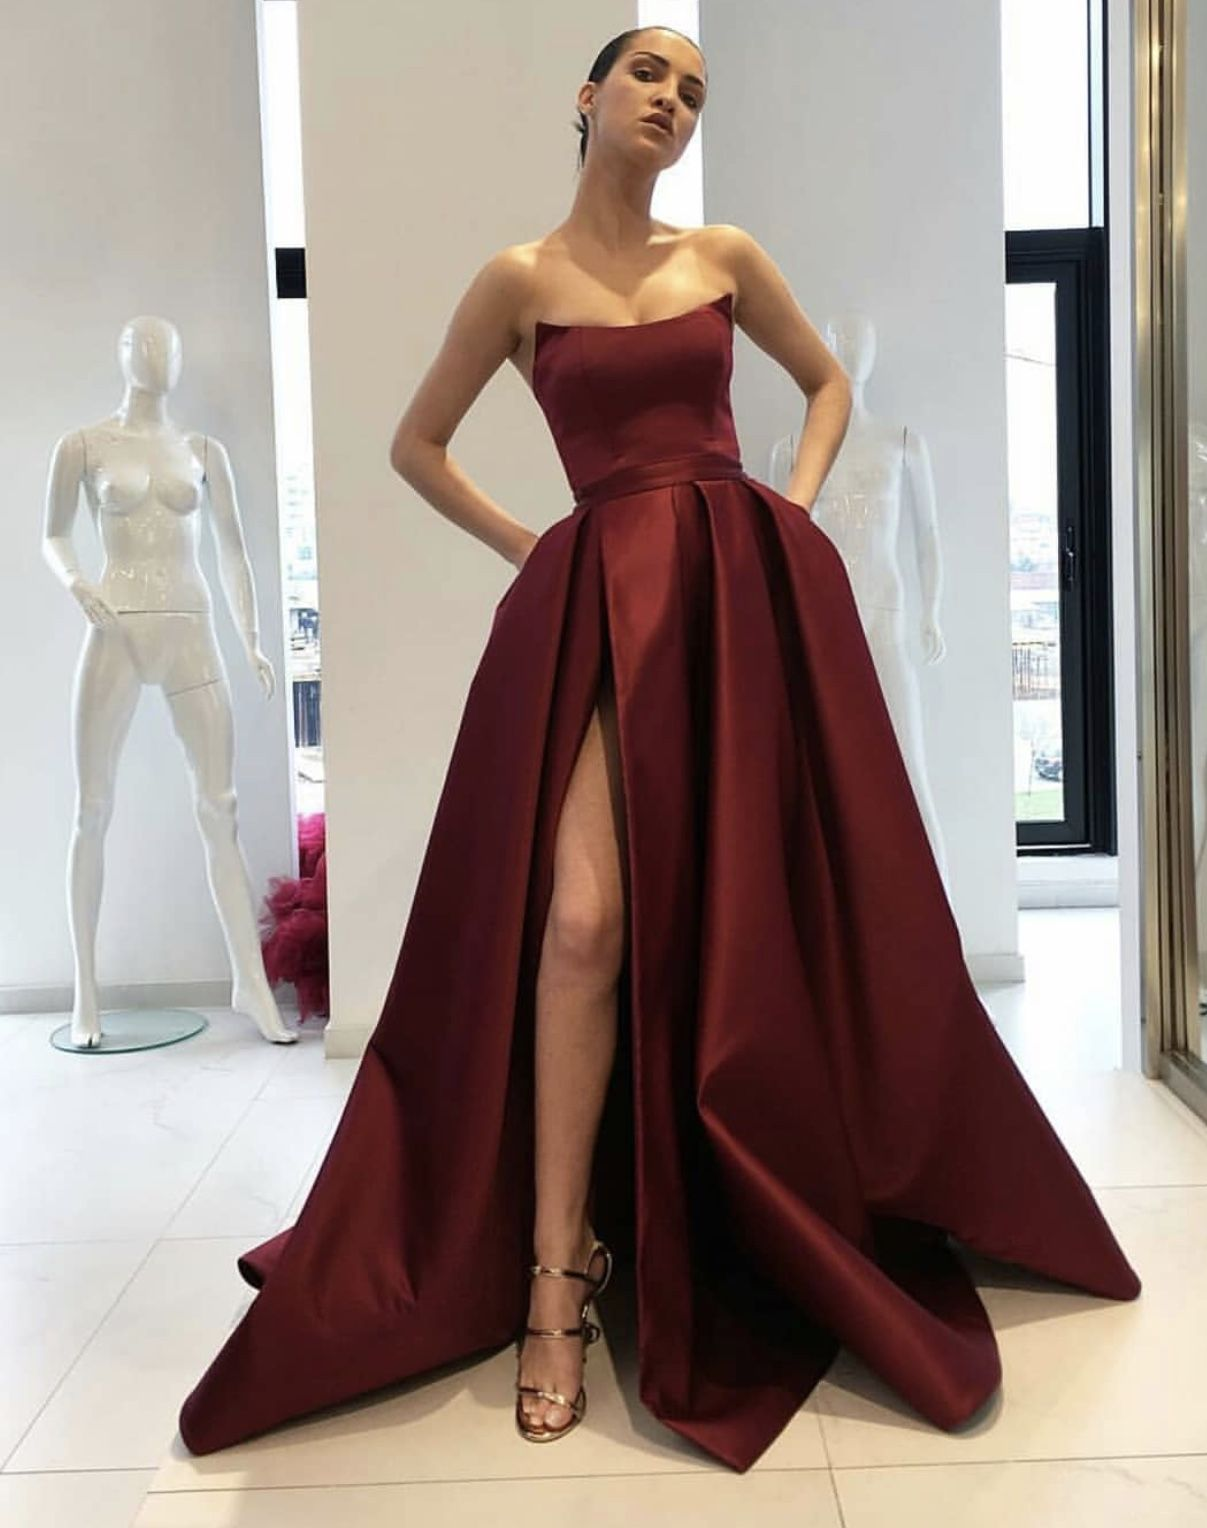 Pin by nourah ibrahim on fashion pinterest november prom and gowns